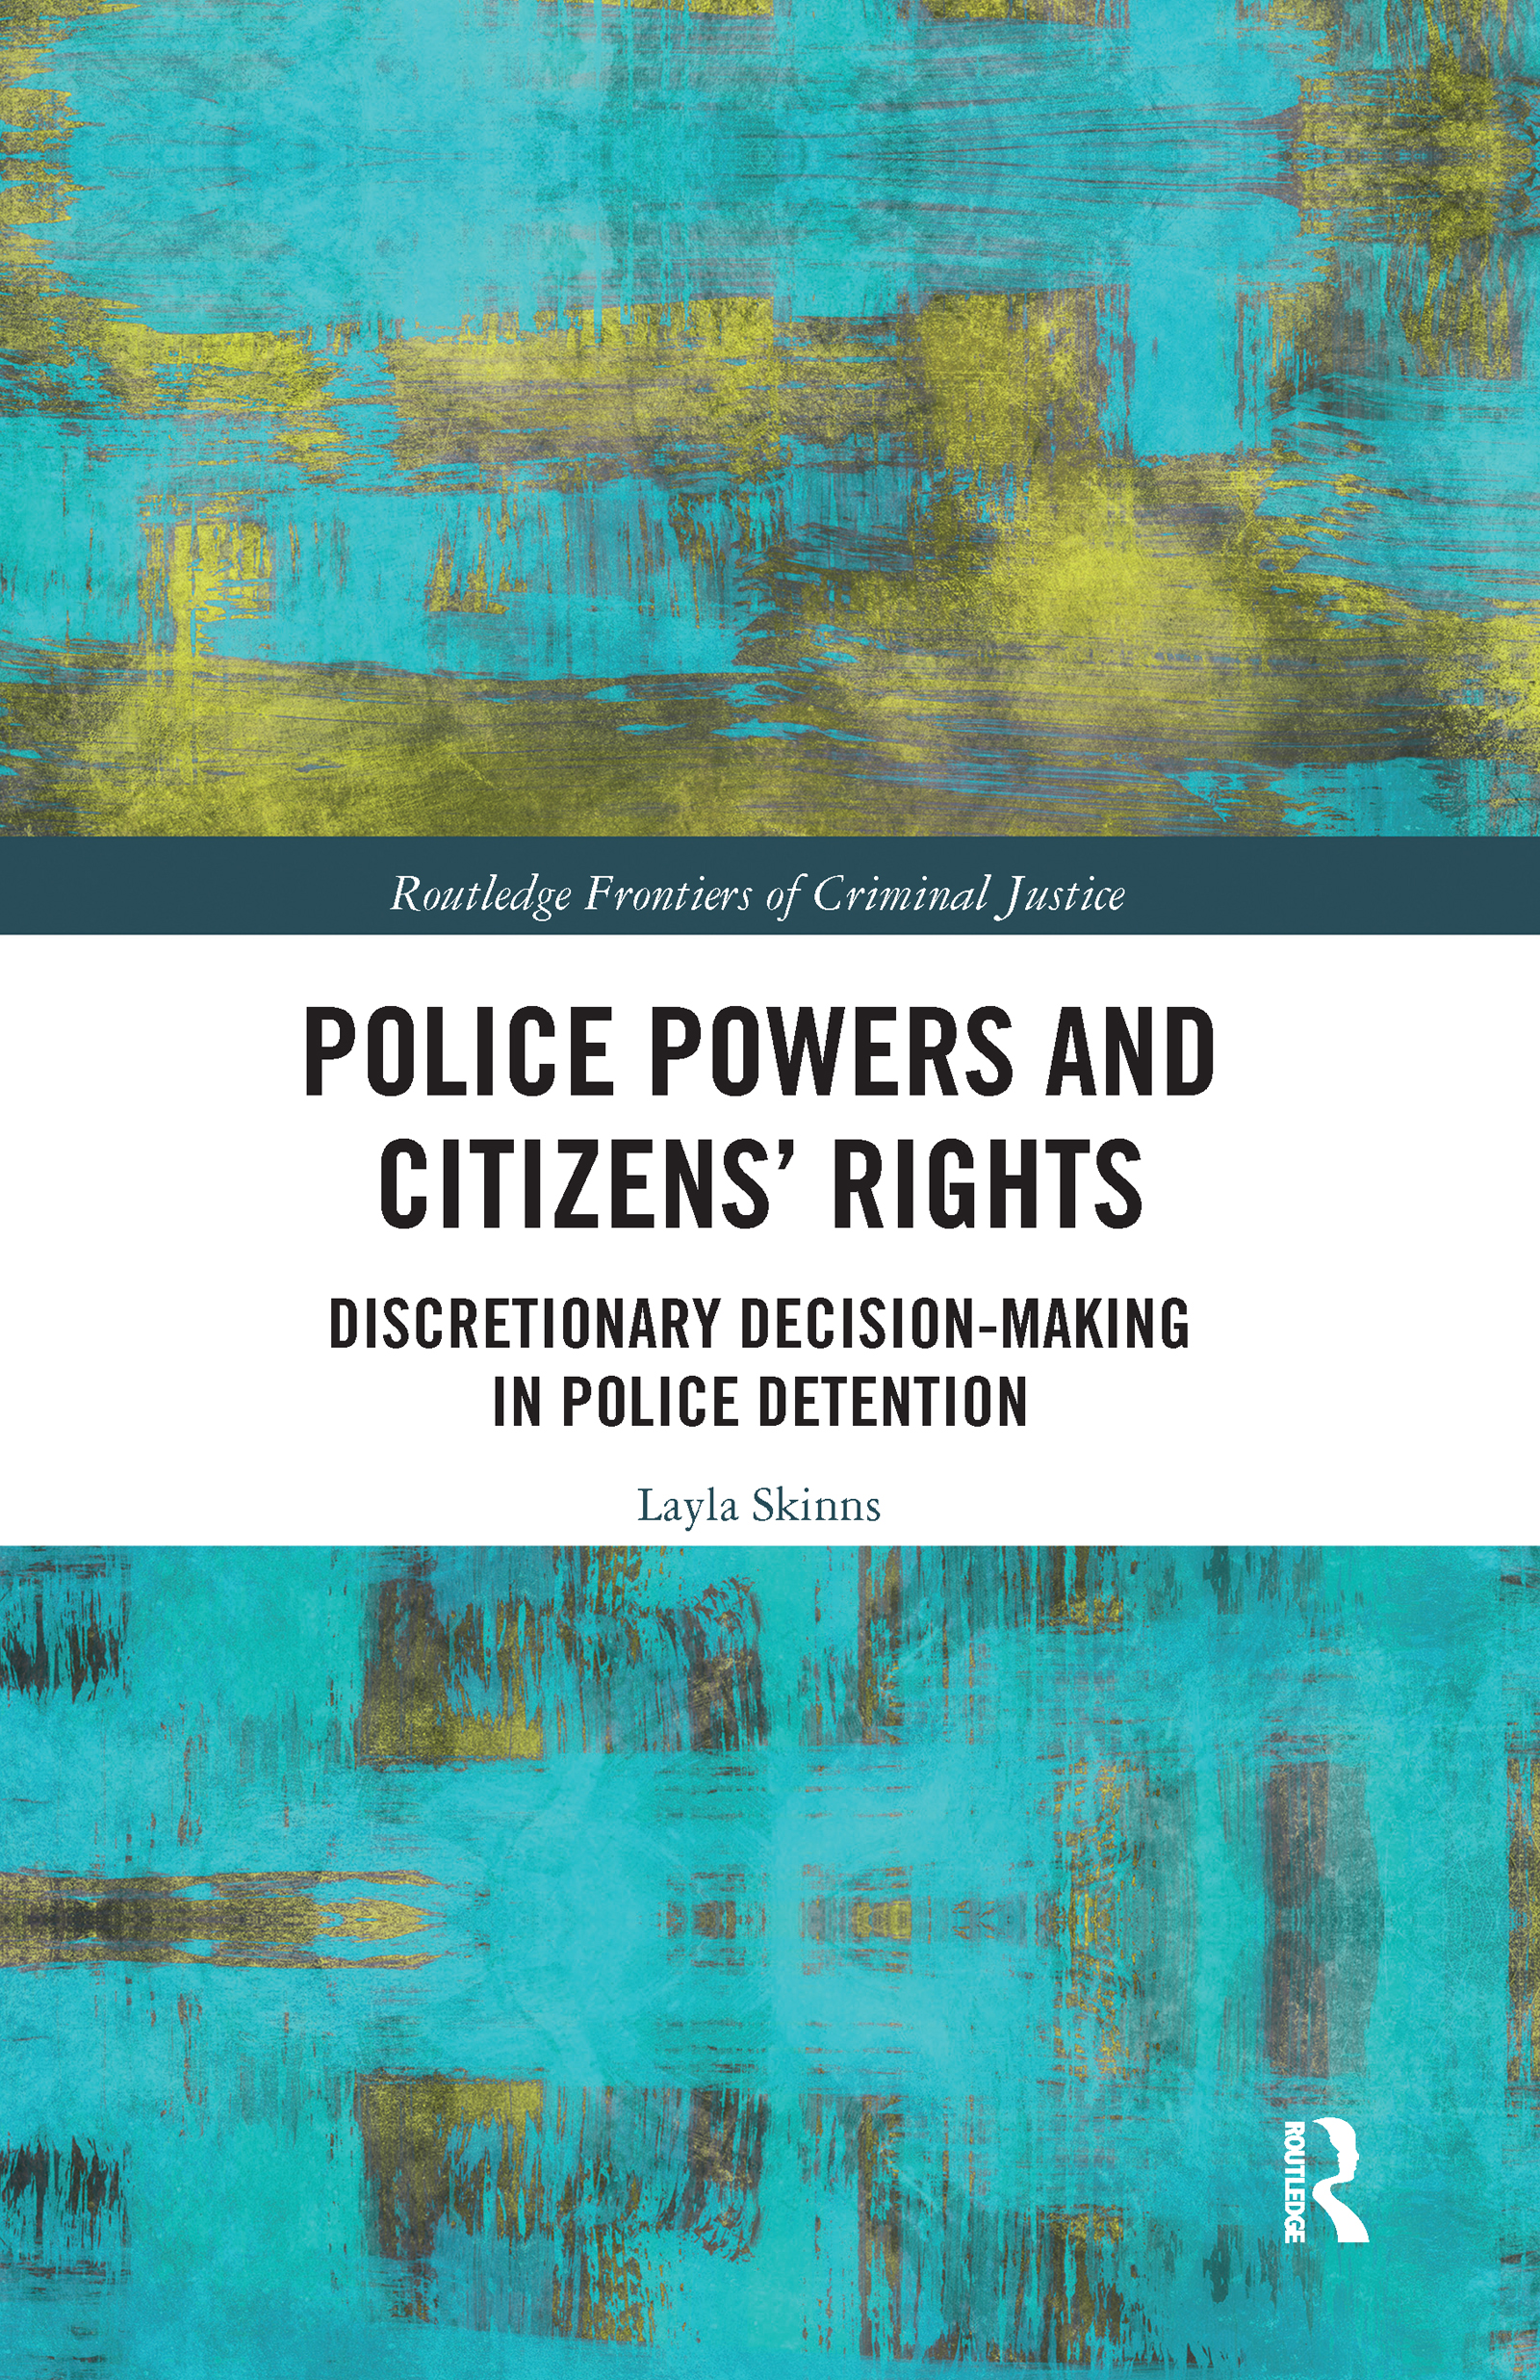 Police Powers and Citizens' Rights